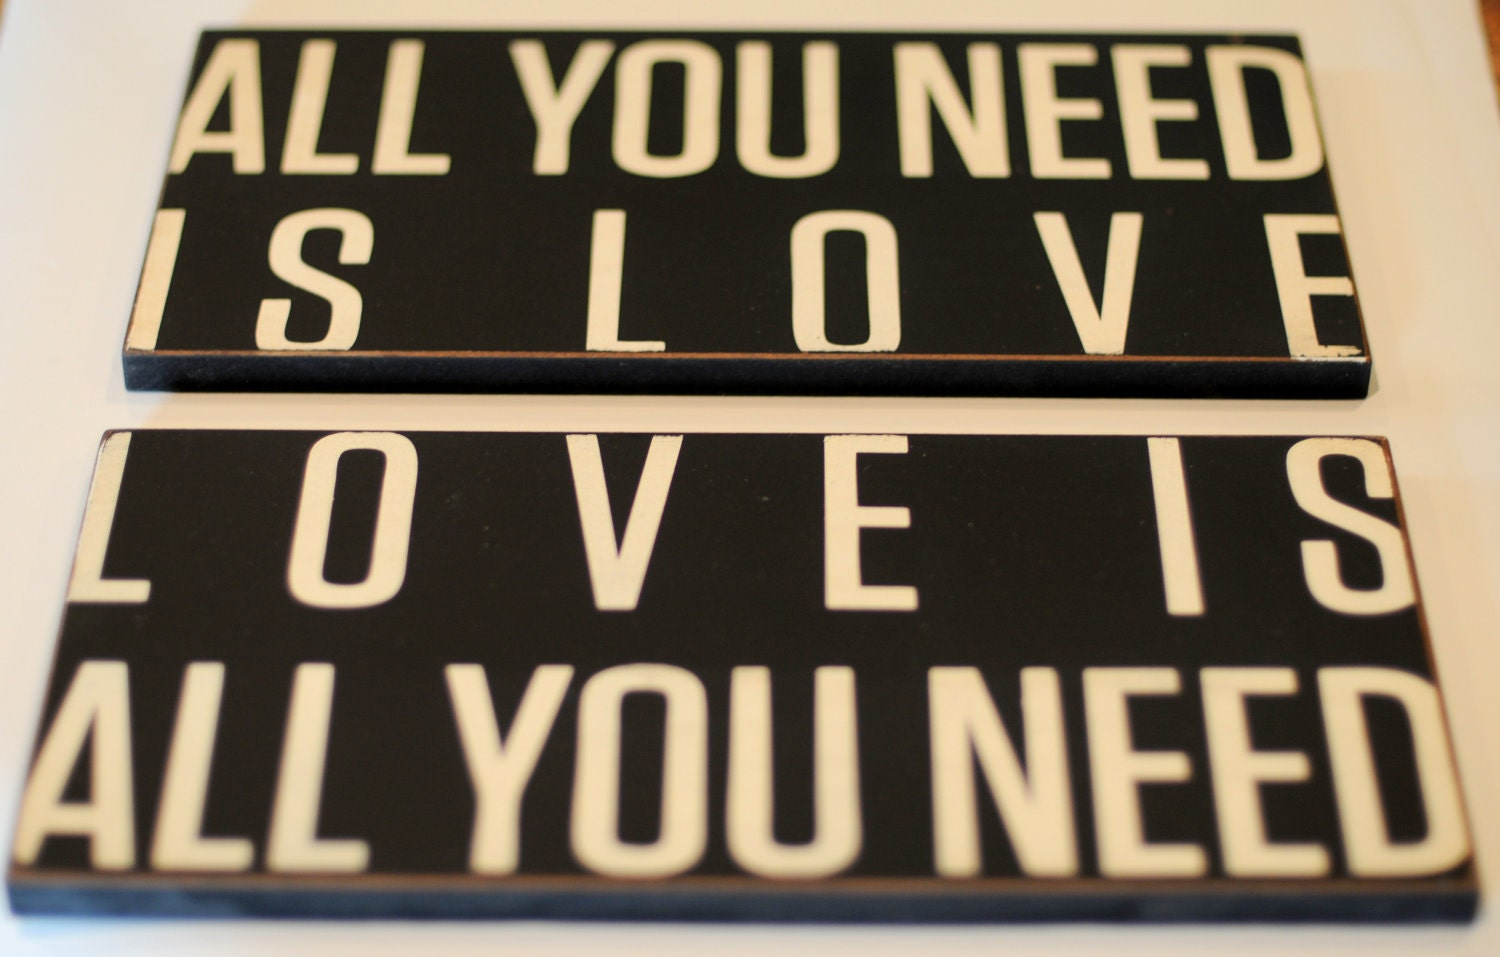 Typography Word Art Signs - All You Need Is Love Love Is All You Need - Your Choice of Color